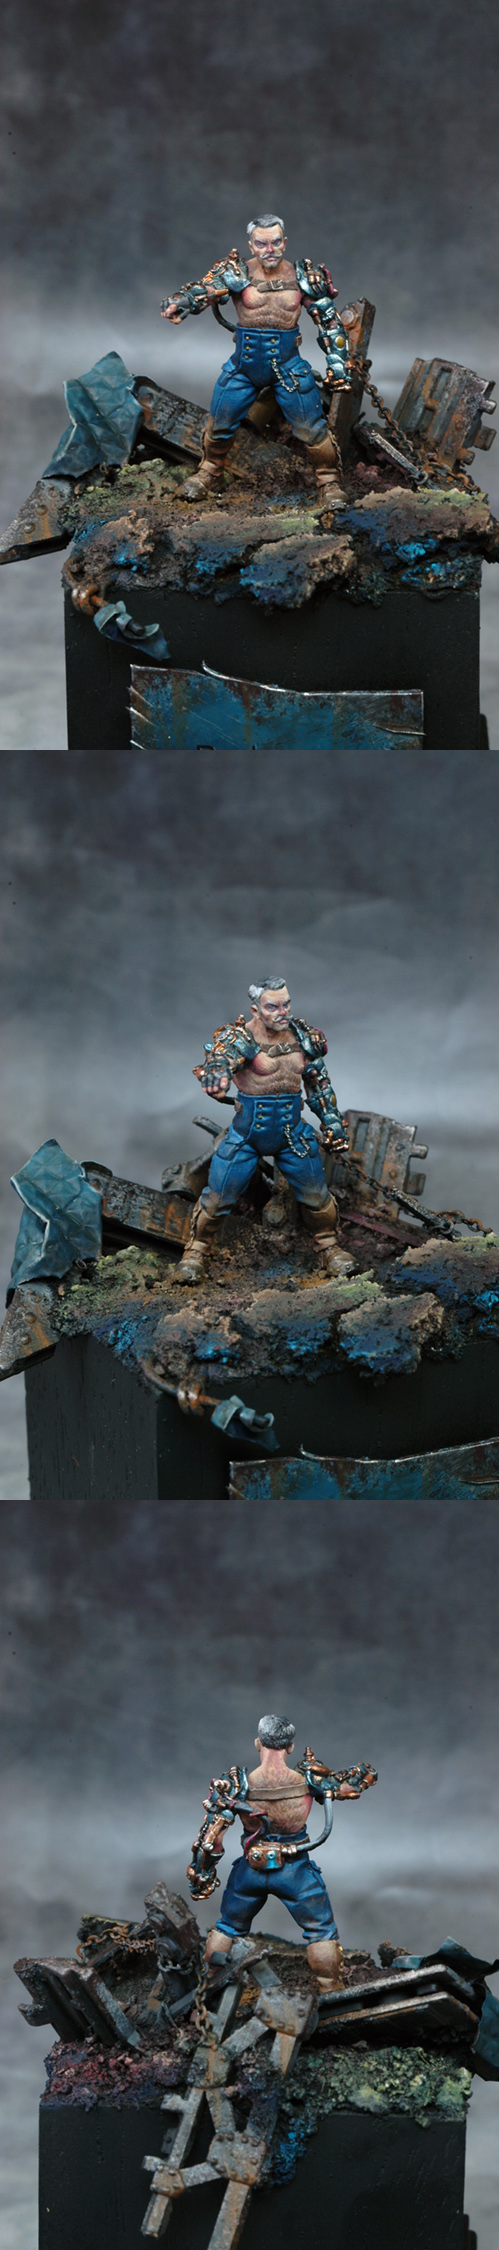 Badger from Infamy Miniatures